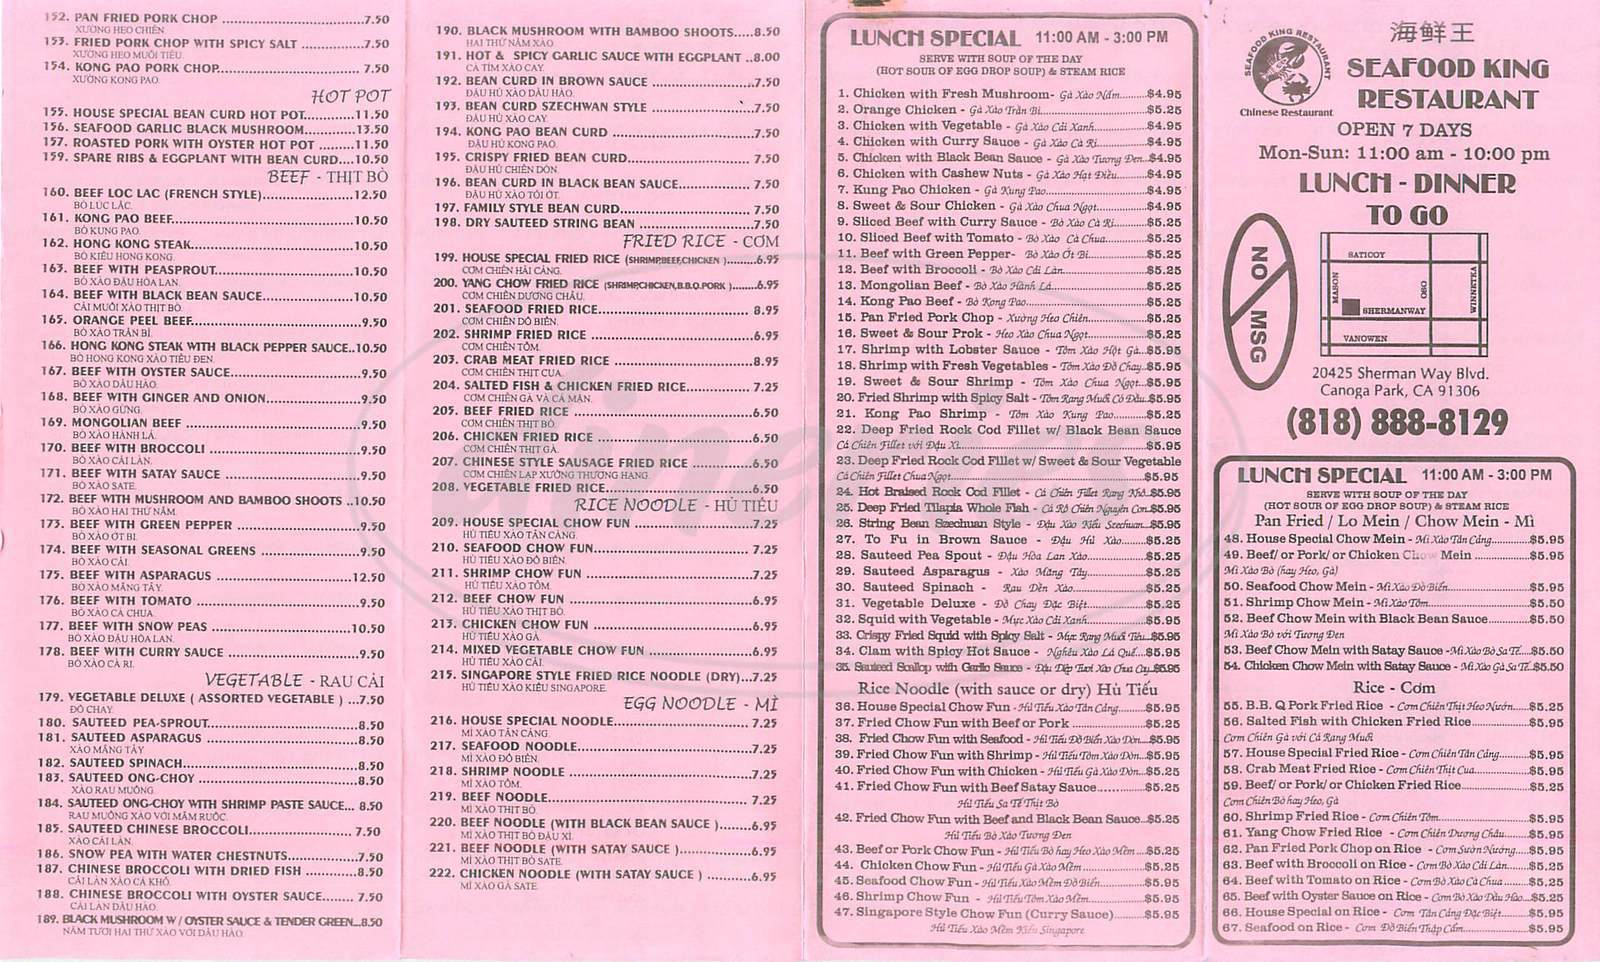 menu for Seafood King Restaurant